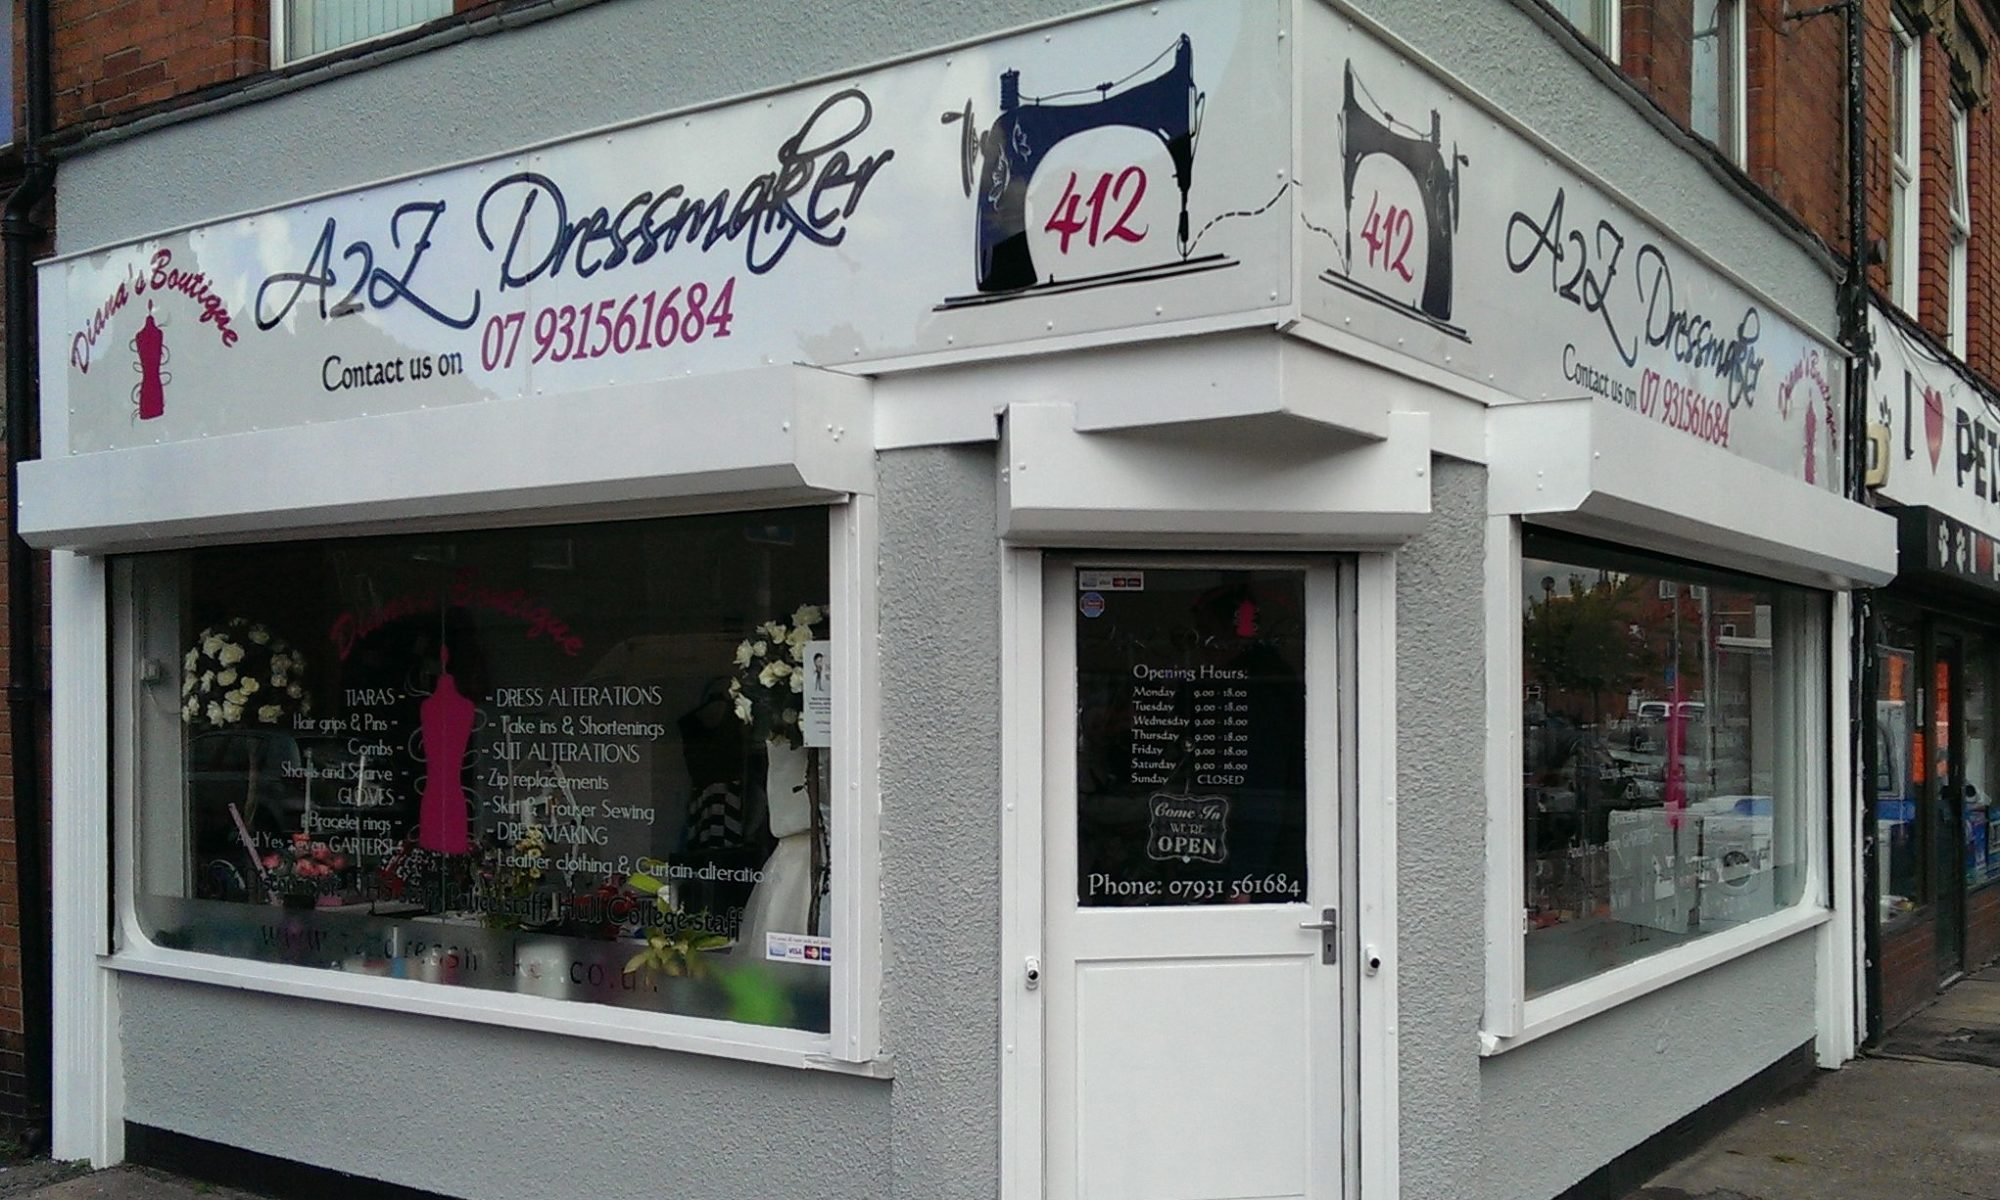 Clothing alterations|Dressmaker|412 Hessle Road, Hull  07931 561684